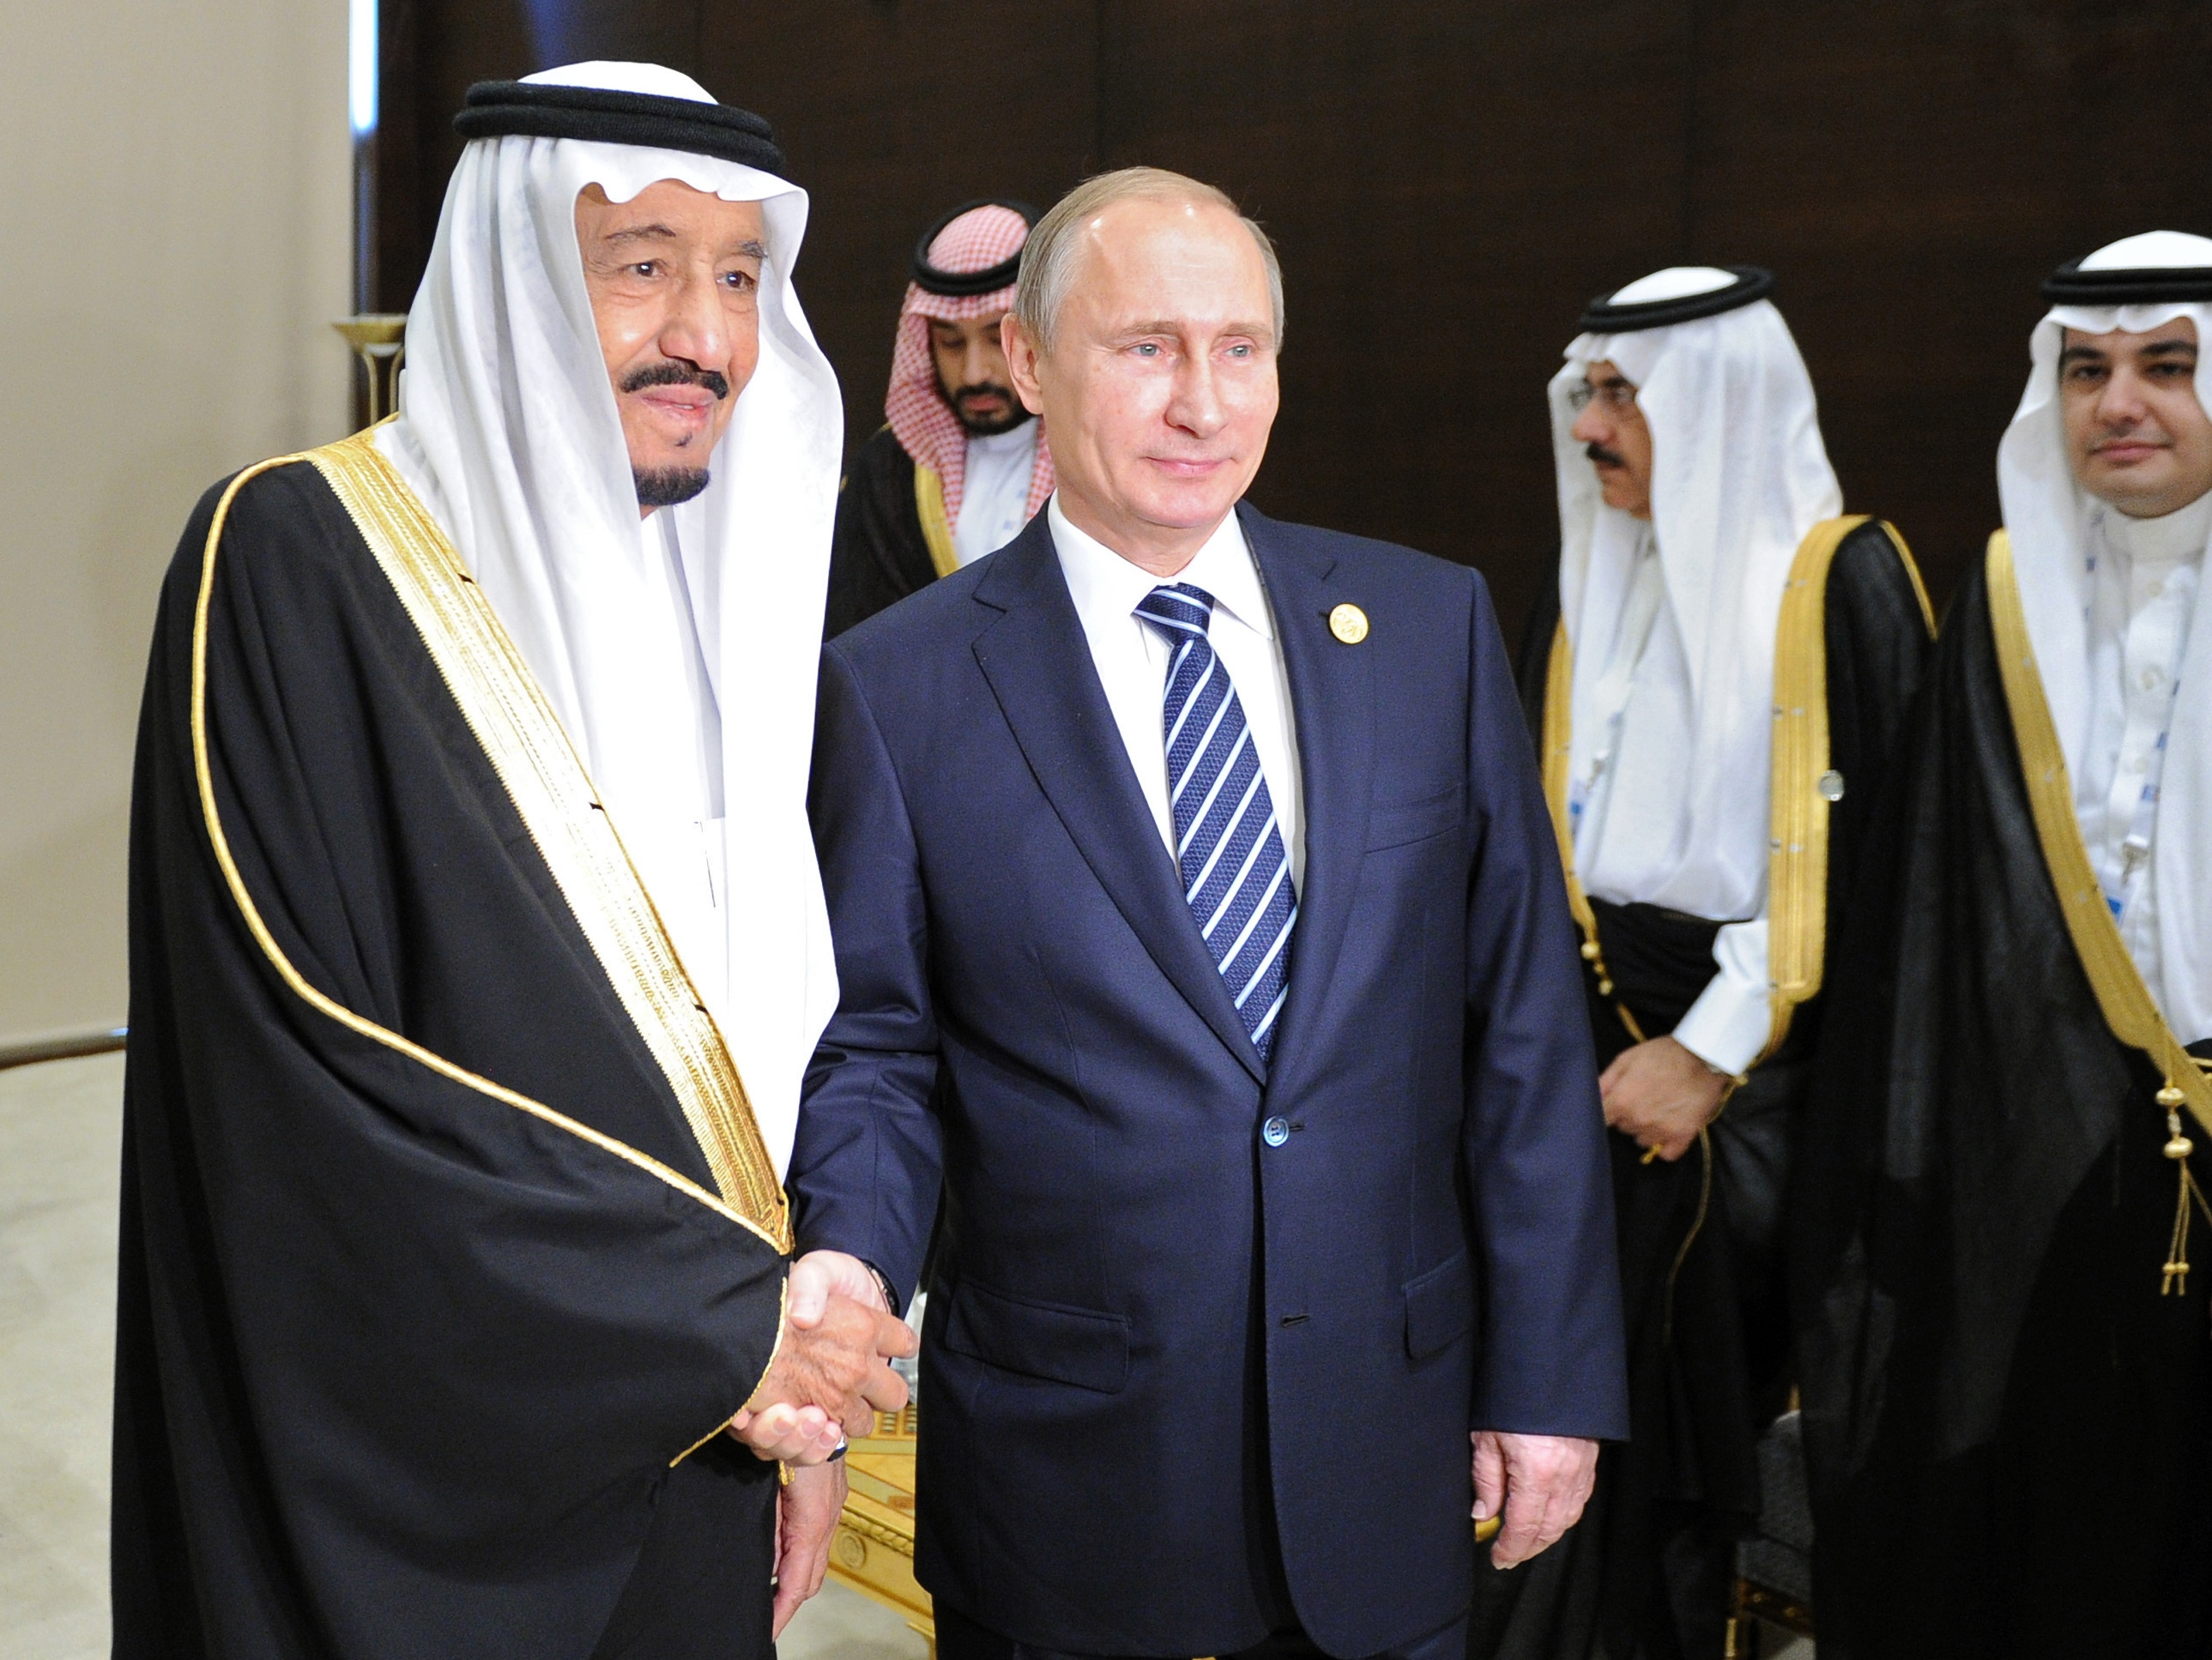 Russian President Vladimir Putin (C) shakes hands with Saudi King Salman bin Abdulaziz Al Saud during a meeting on the sidelines of the G20 summit in Antalya on Nov. 16, 2015